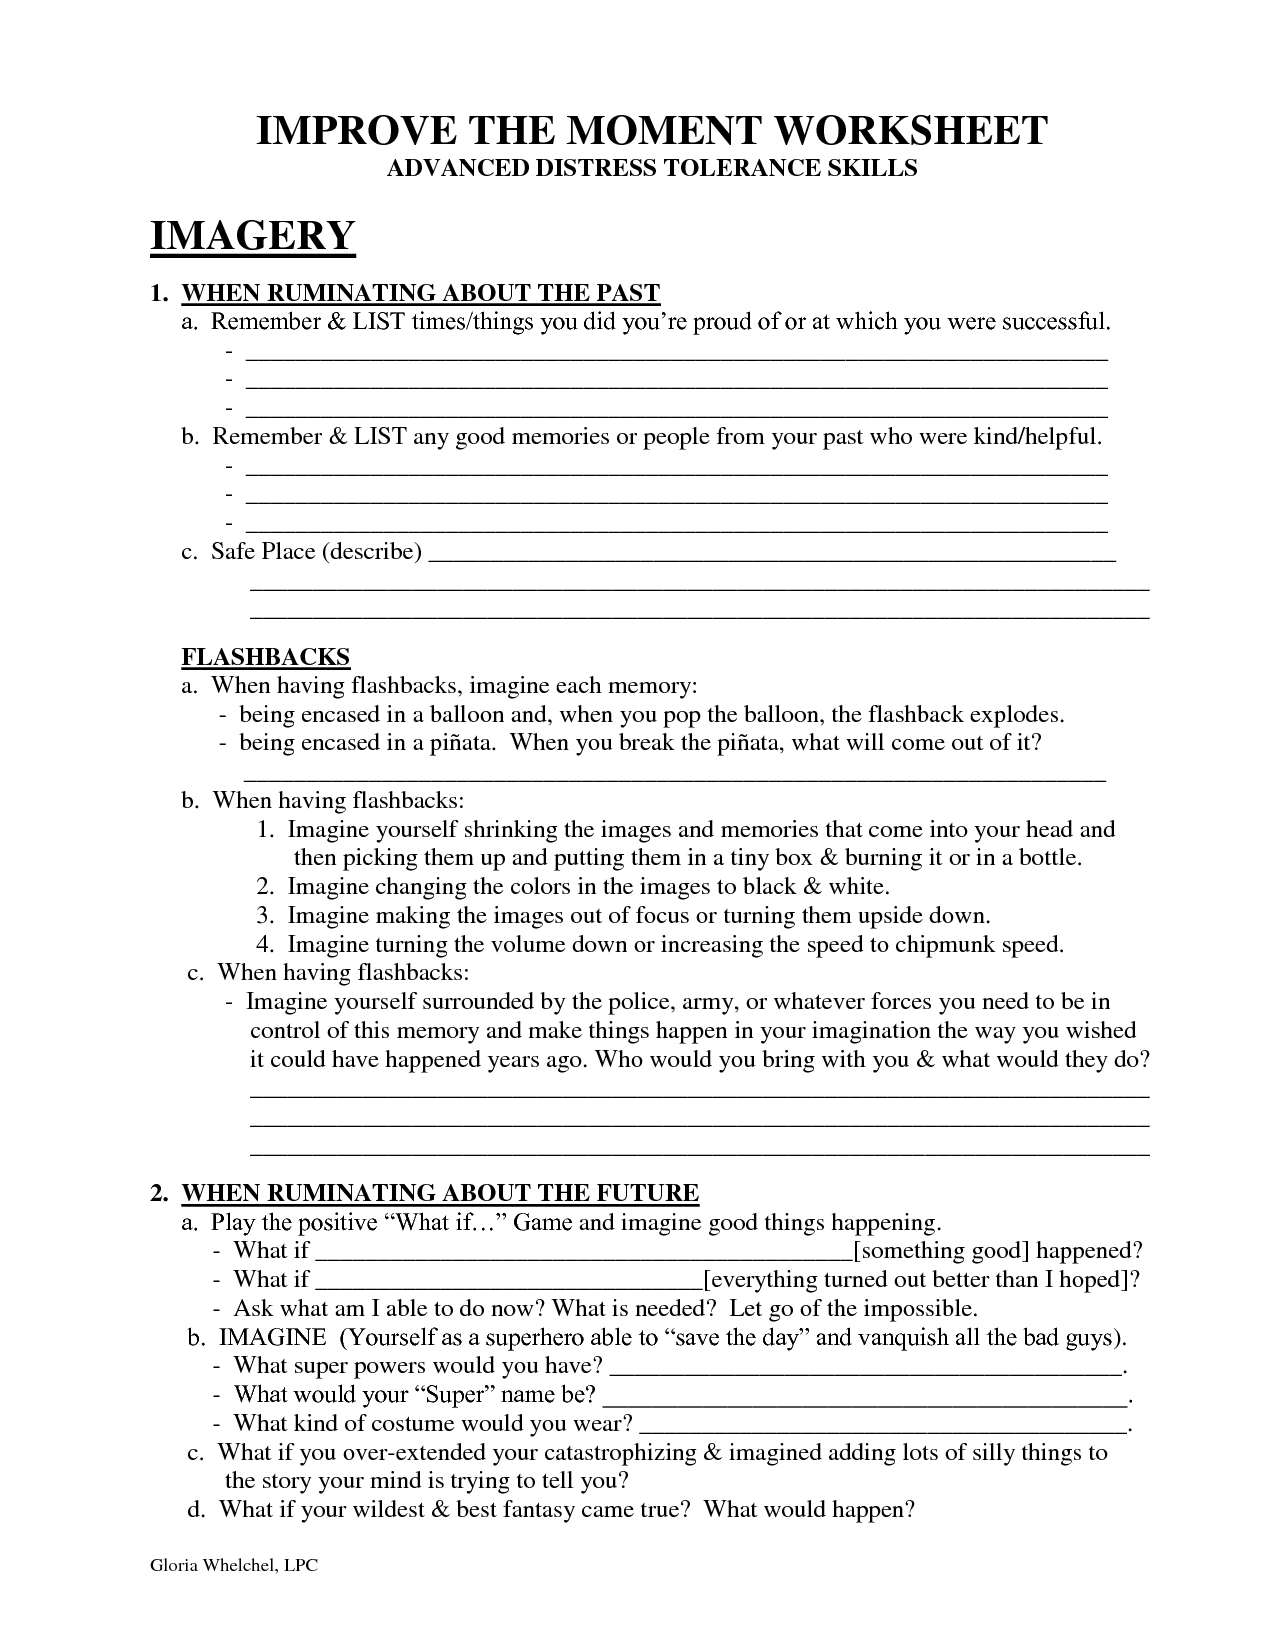 worksheet Self Confidence Worksheets improve the moment worksheet dbt self help therapy parenting a damaged esteem can wreck your career and harm relationships you turn